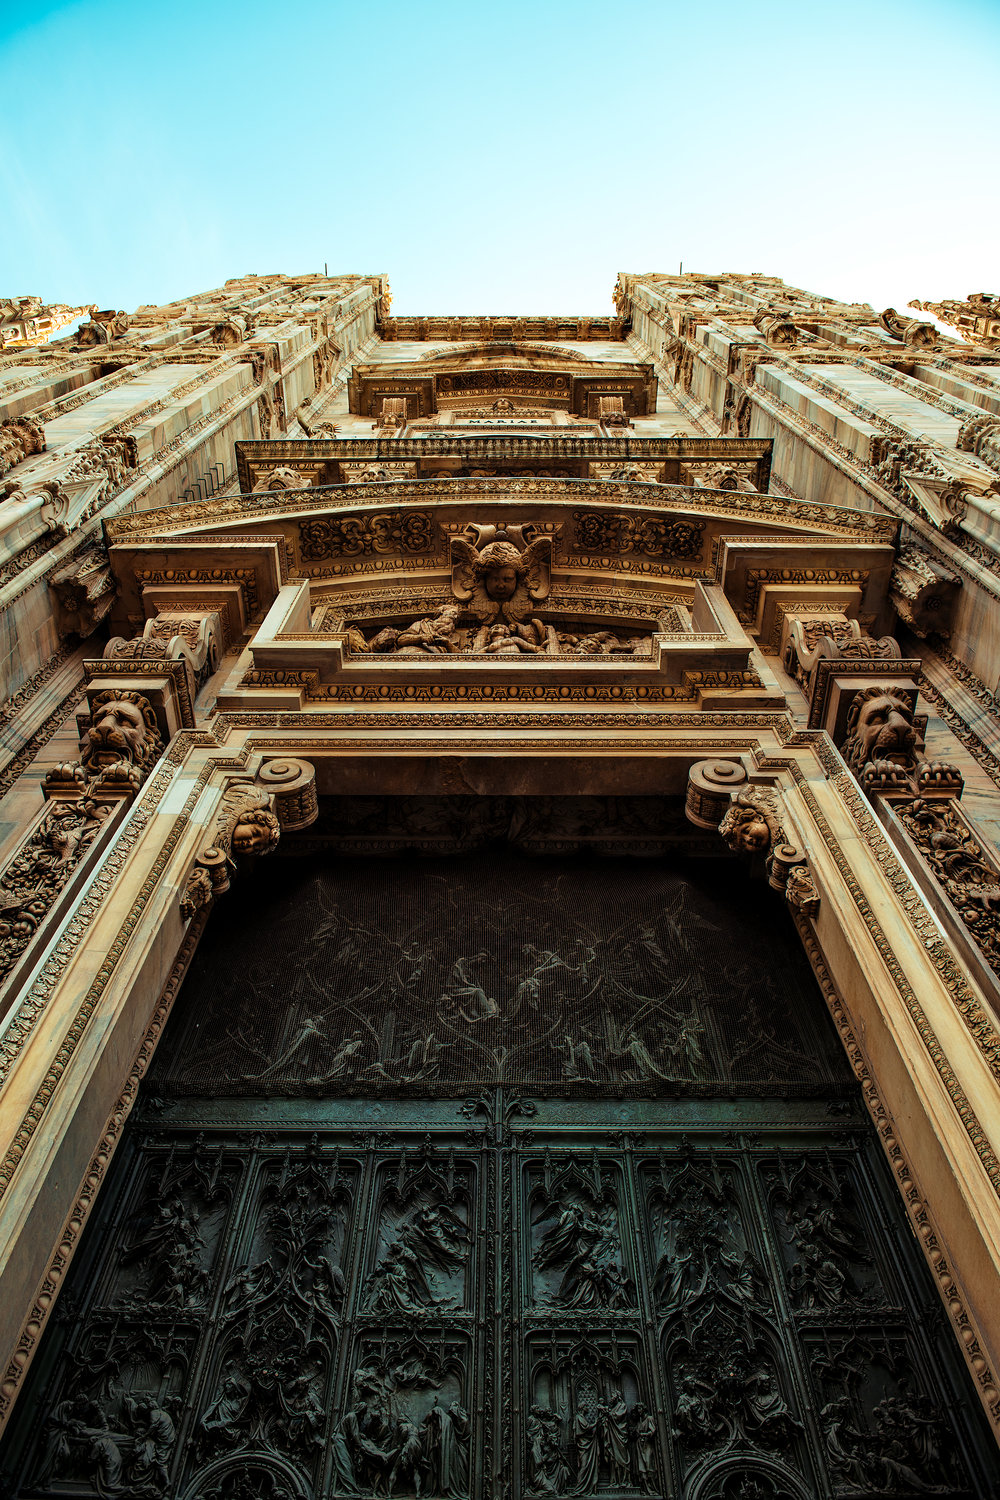 © Guild Magazine - 2018. Though it took approximately 600 years for the Duomo to be constructed (with multiple architects and designers involved in this process), the main doors are relatively new, dating from the 20th century. Nevertheless, they hold true to Pellegrino Tibaldi's original 16th century design.